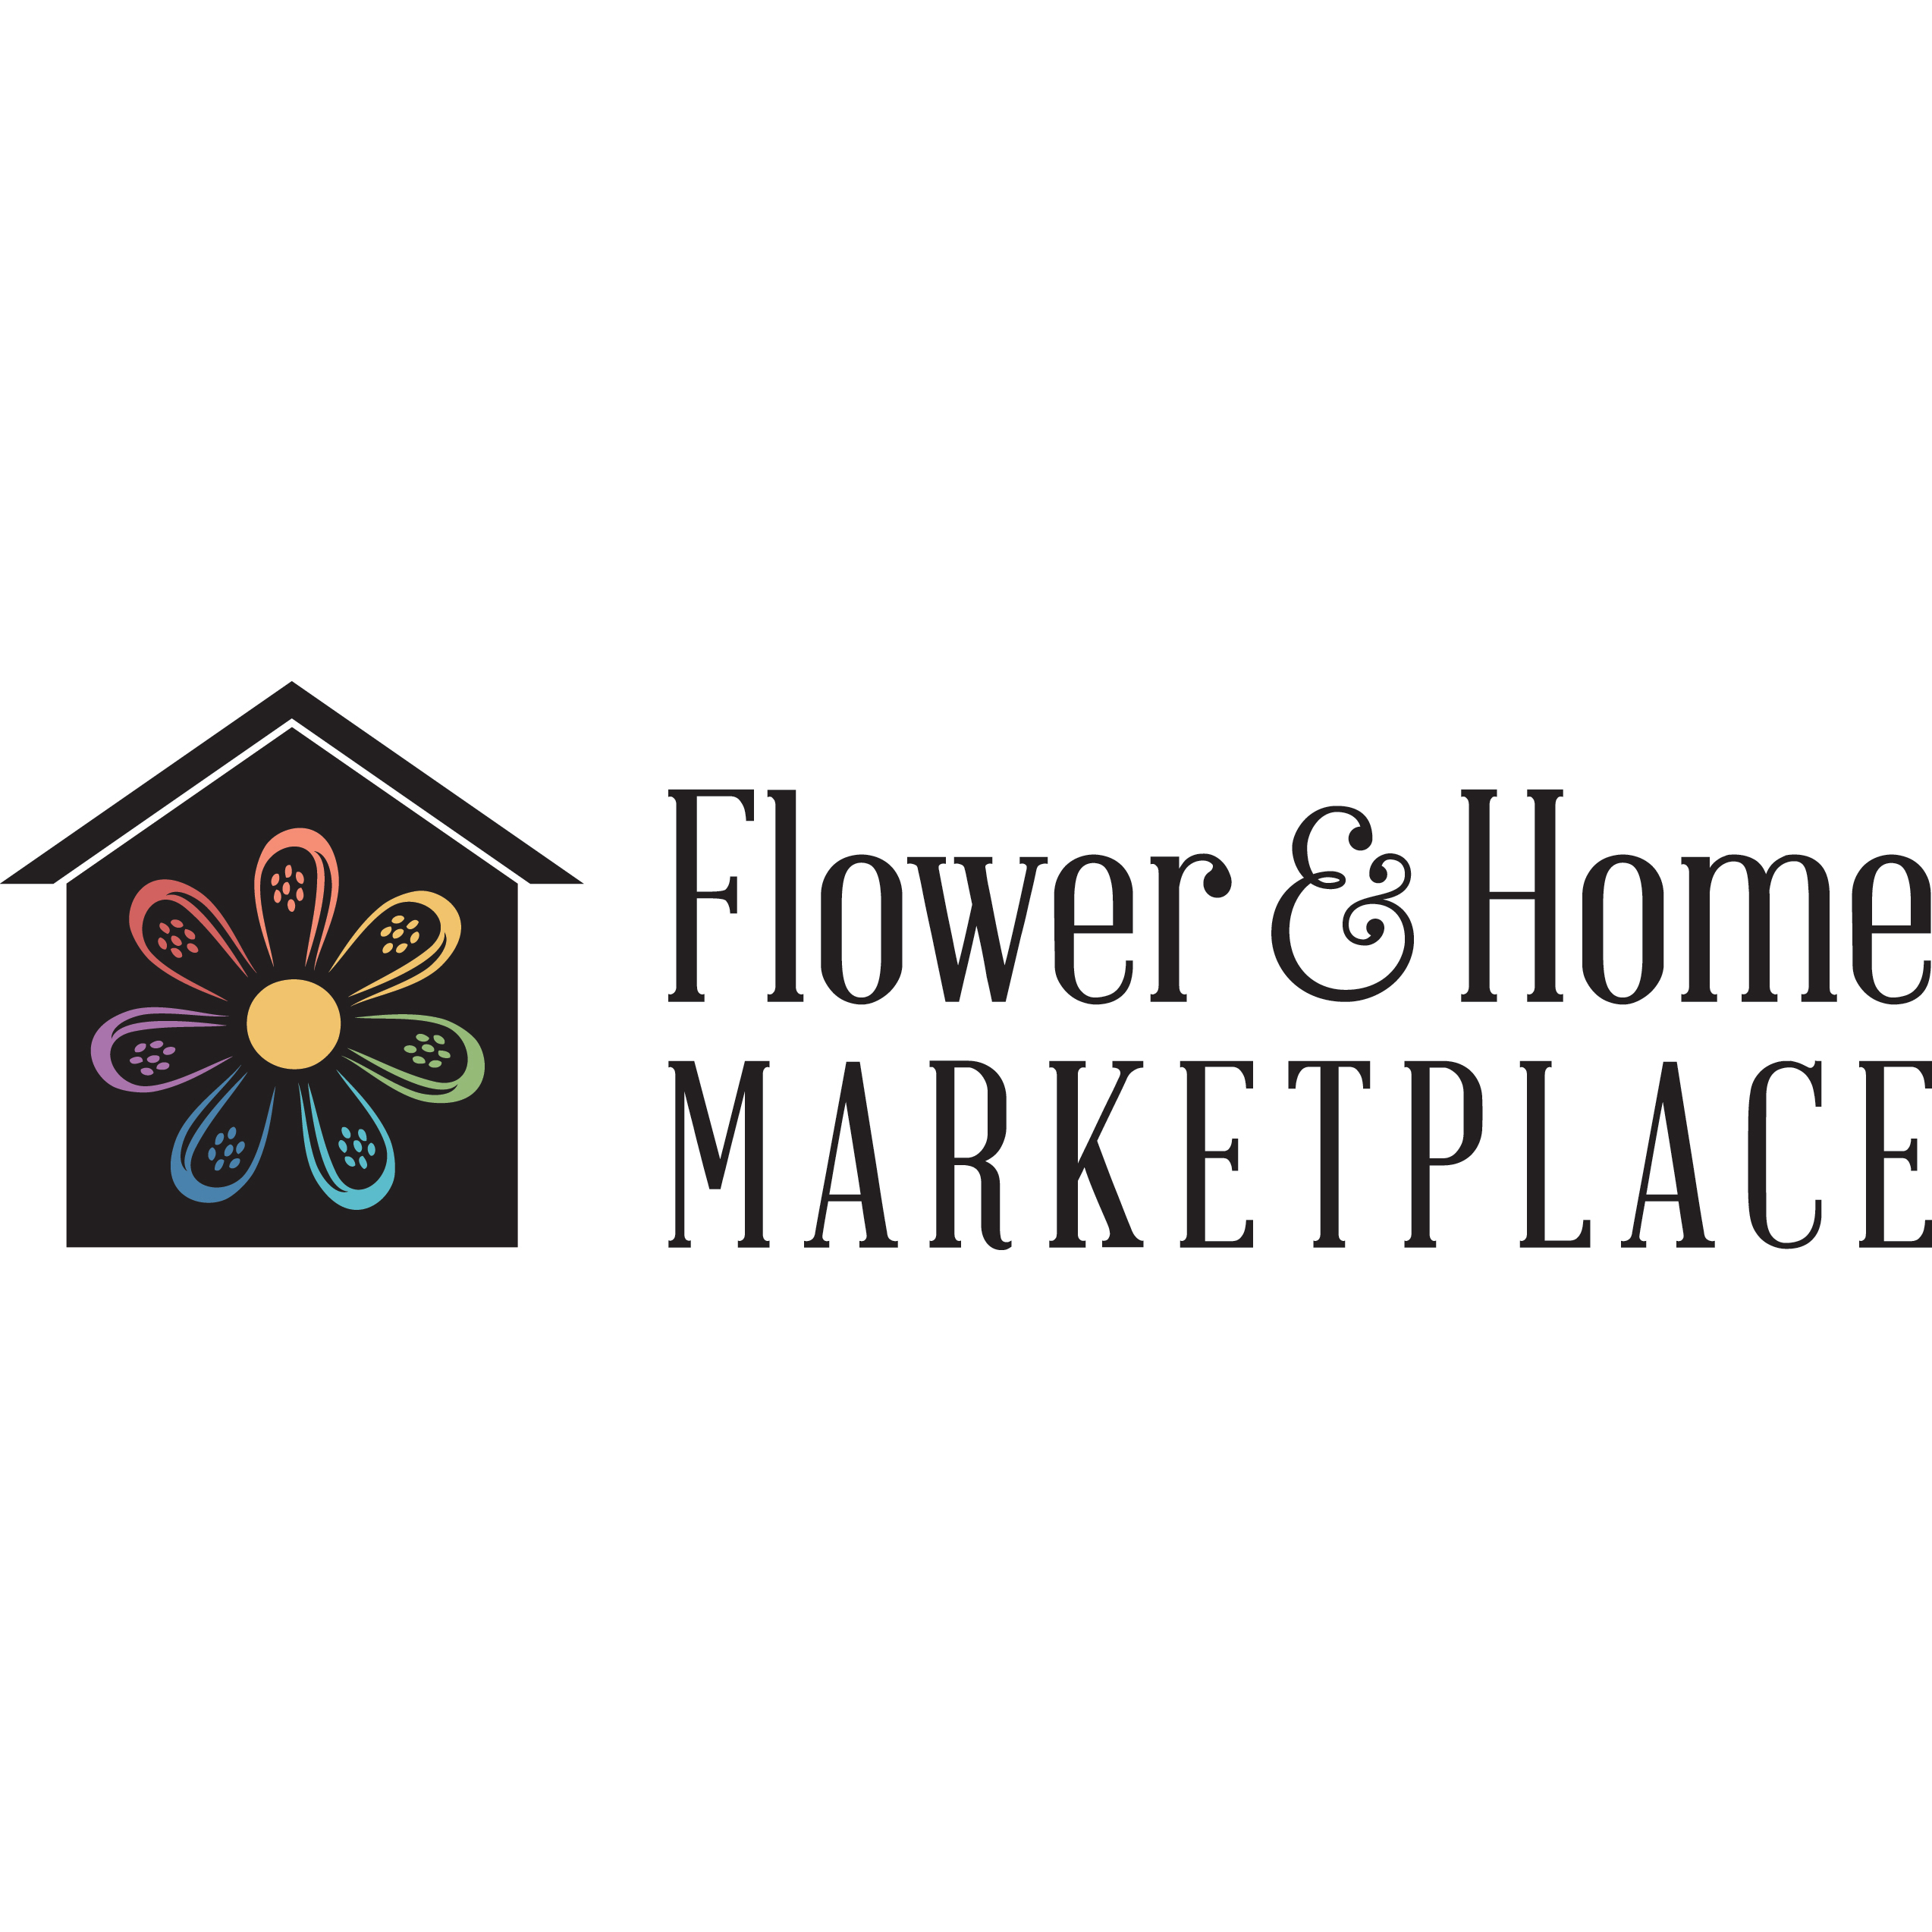 Flower & Home Marketplace image 3